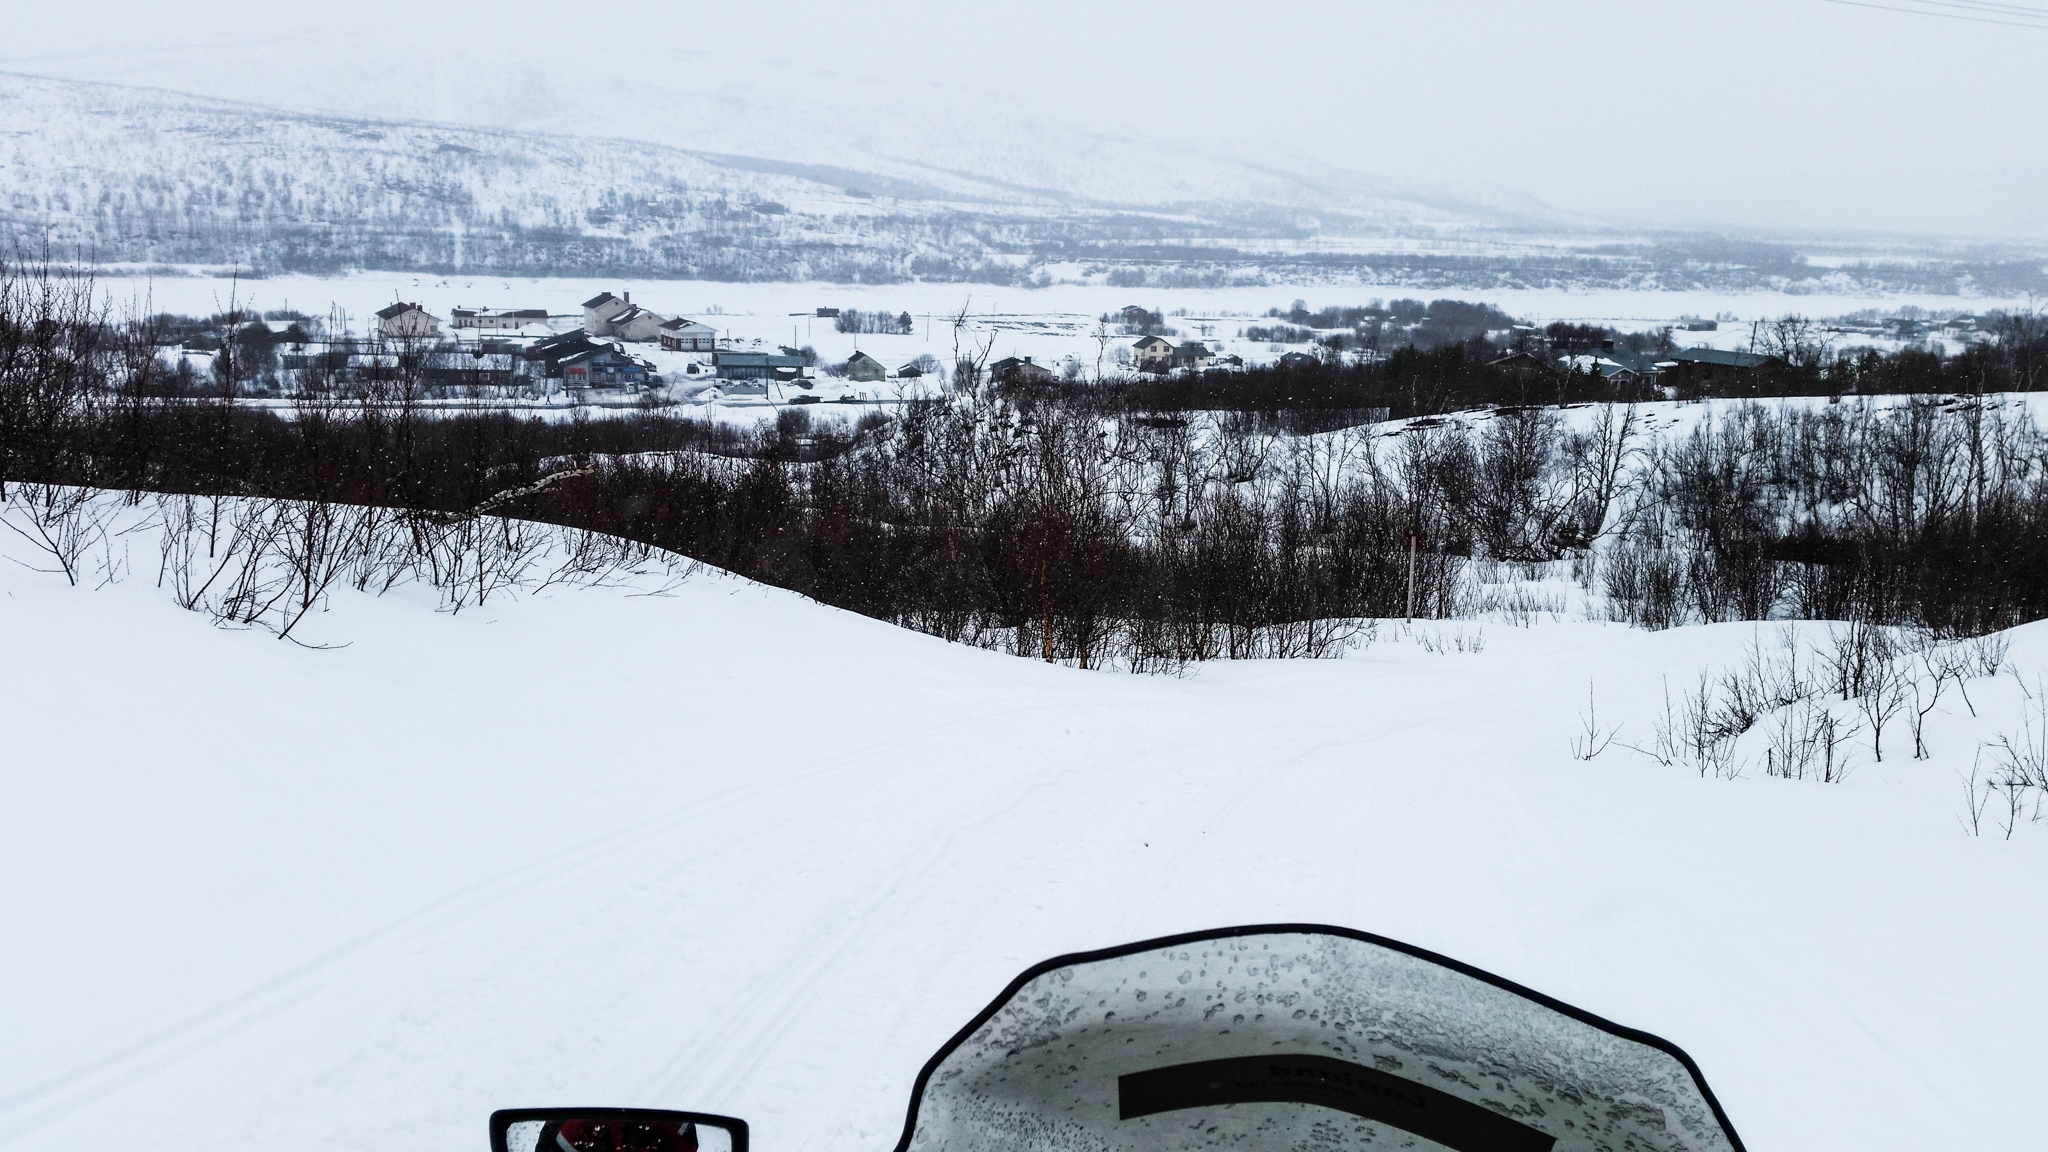 view of small village and snowy landscape